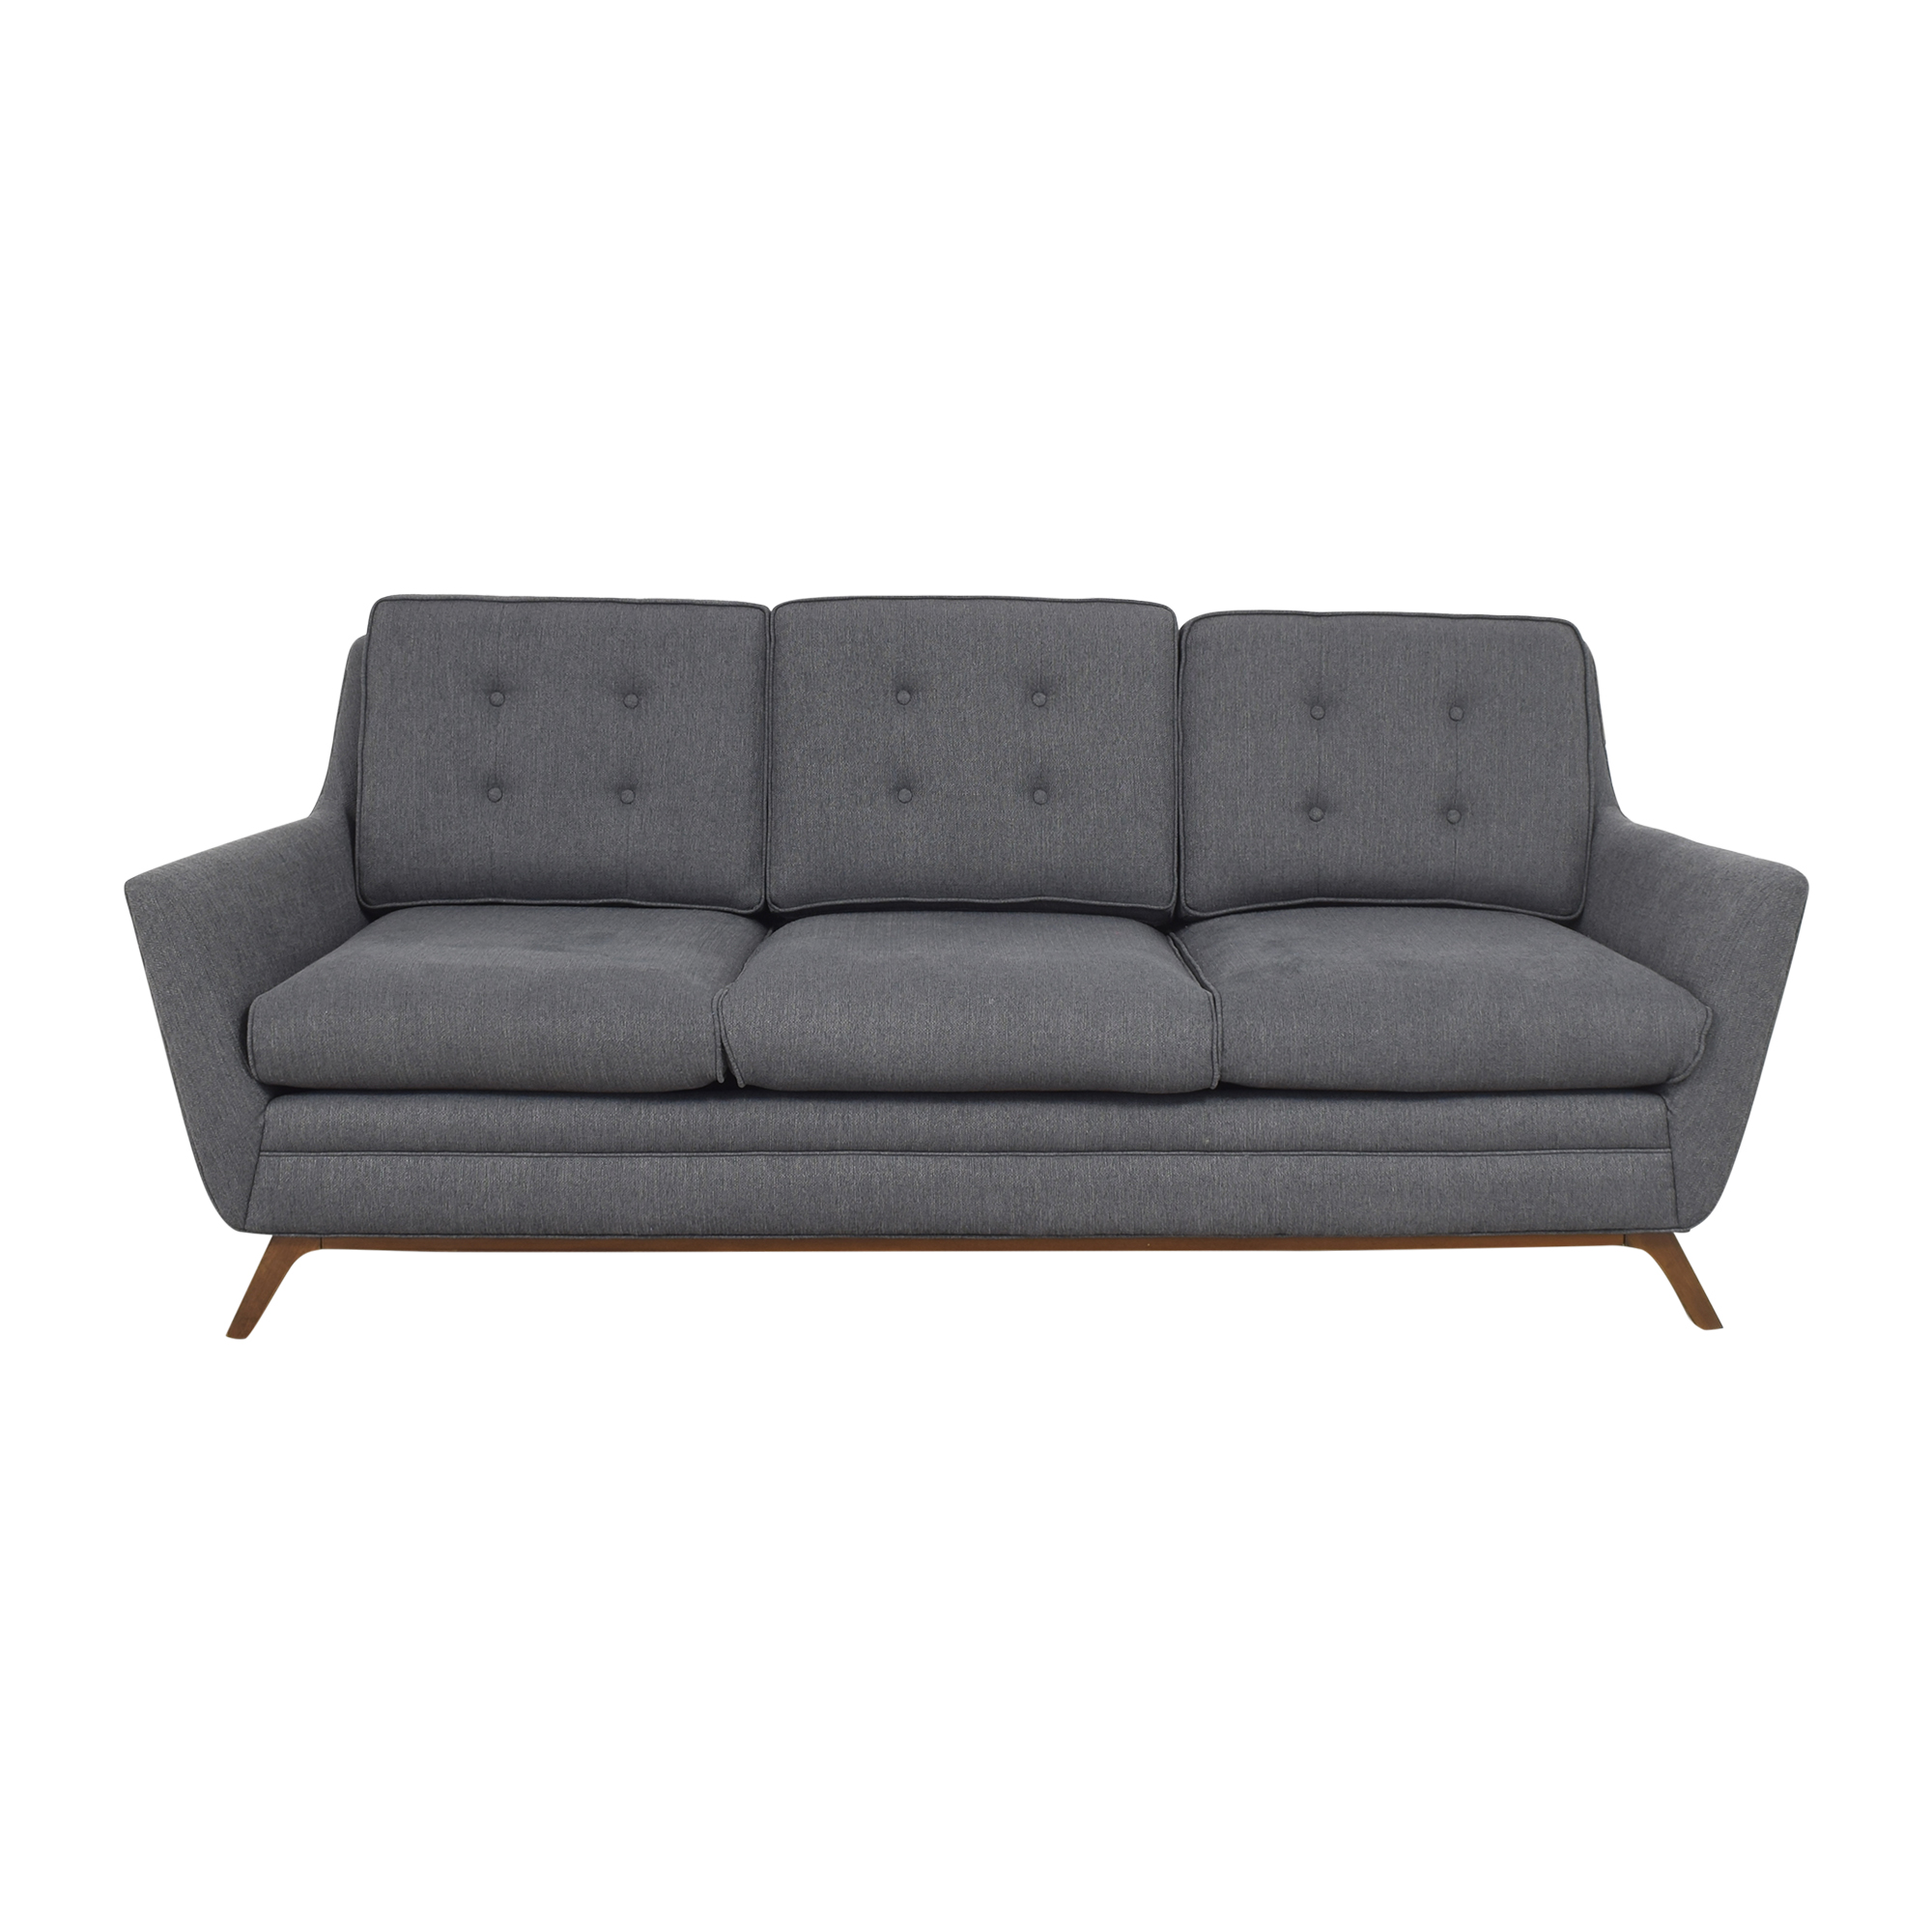 Modway Modway Beguile Tufted Sofa discount